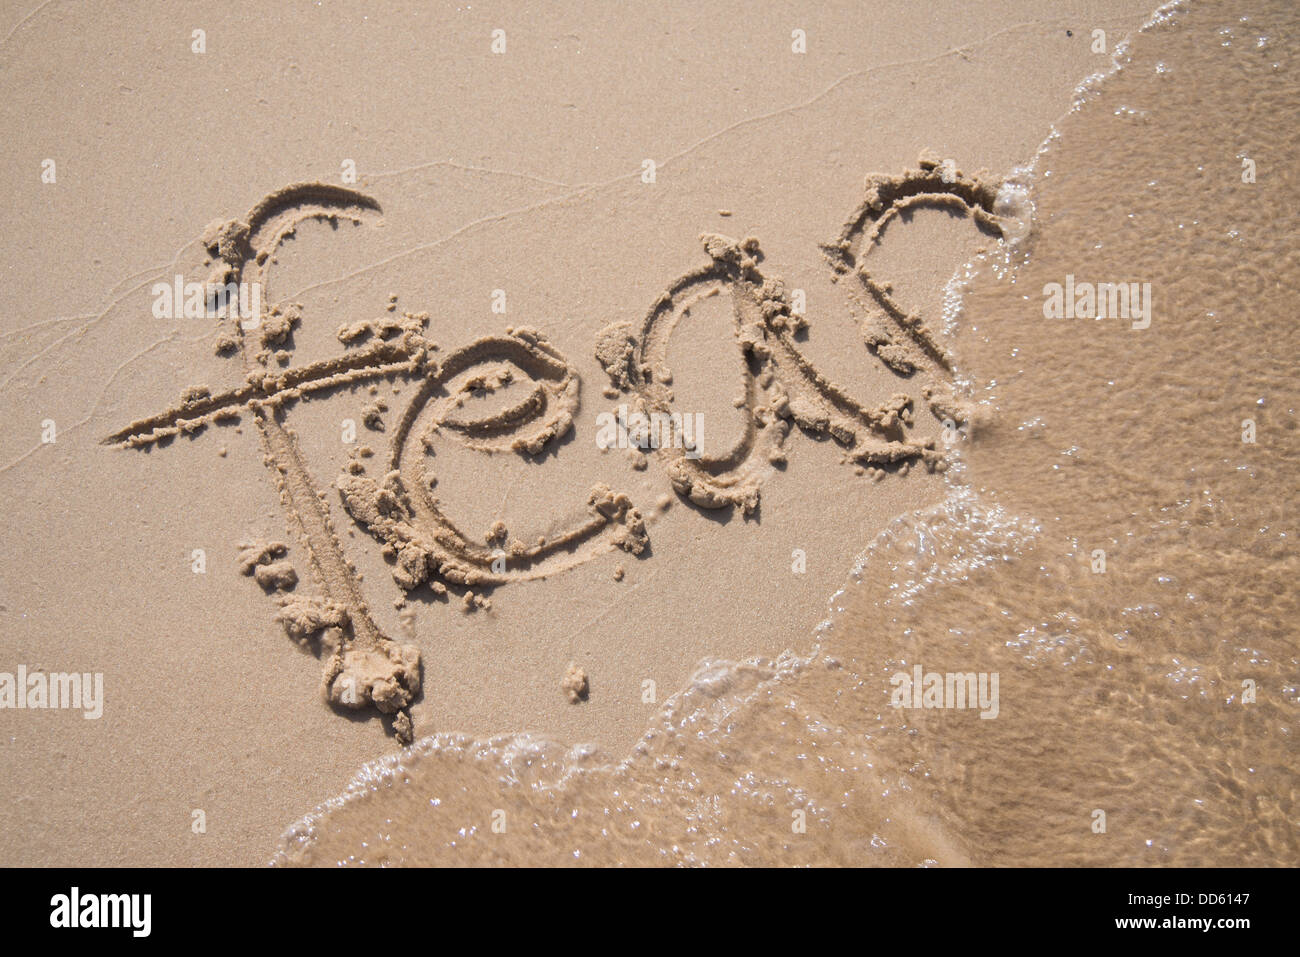 The word 'fear' written in the sand. - Stock Image